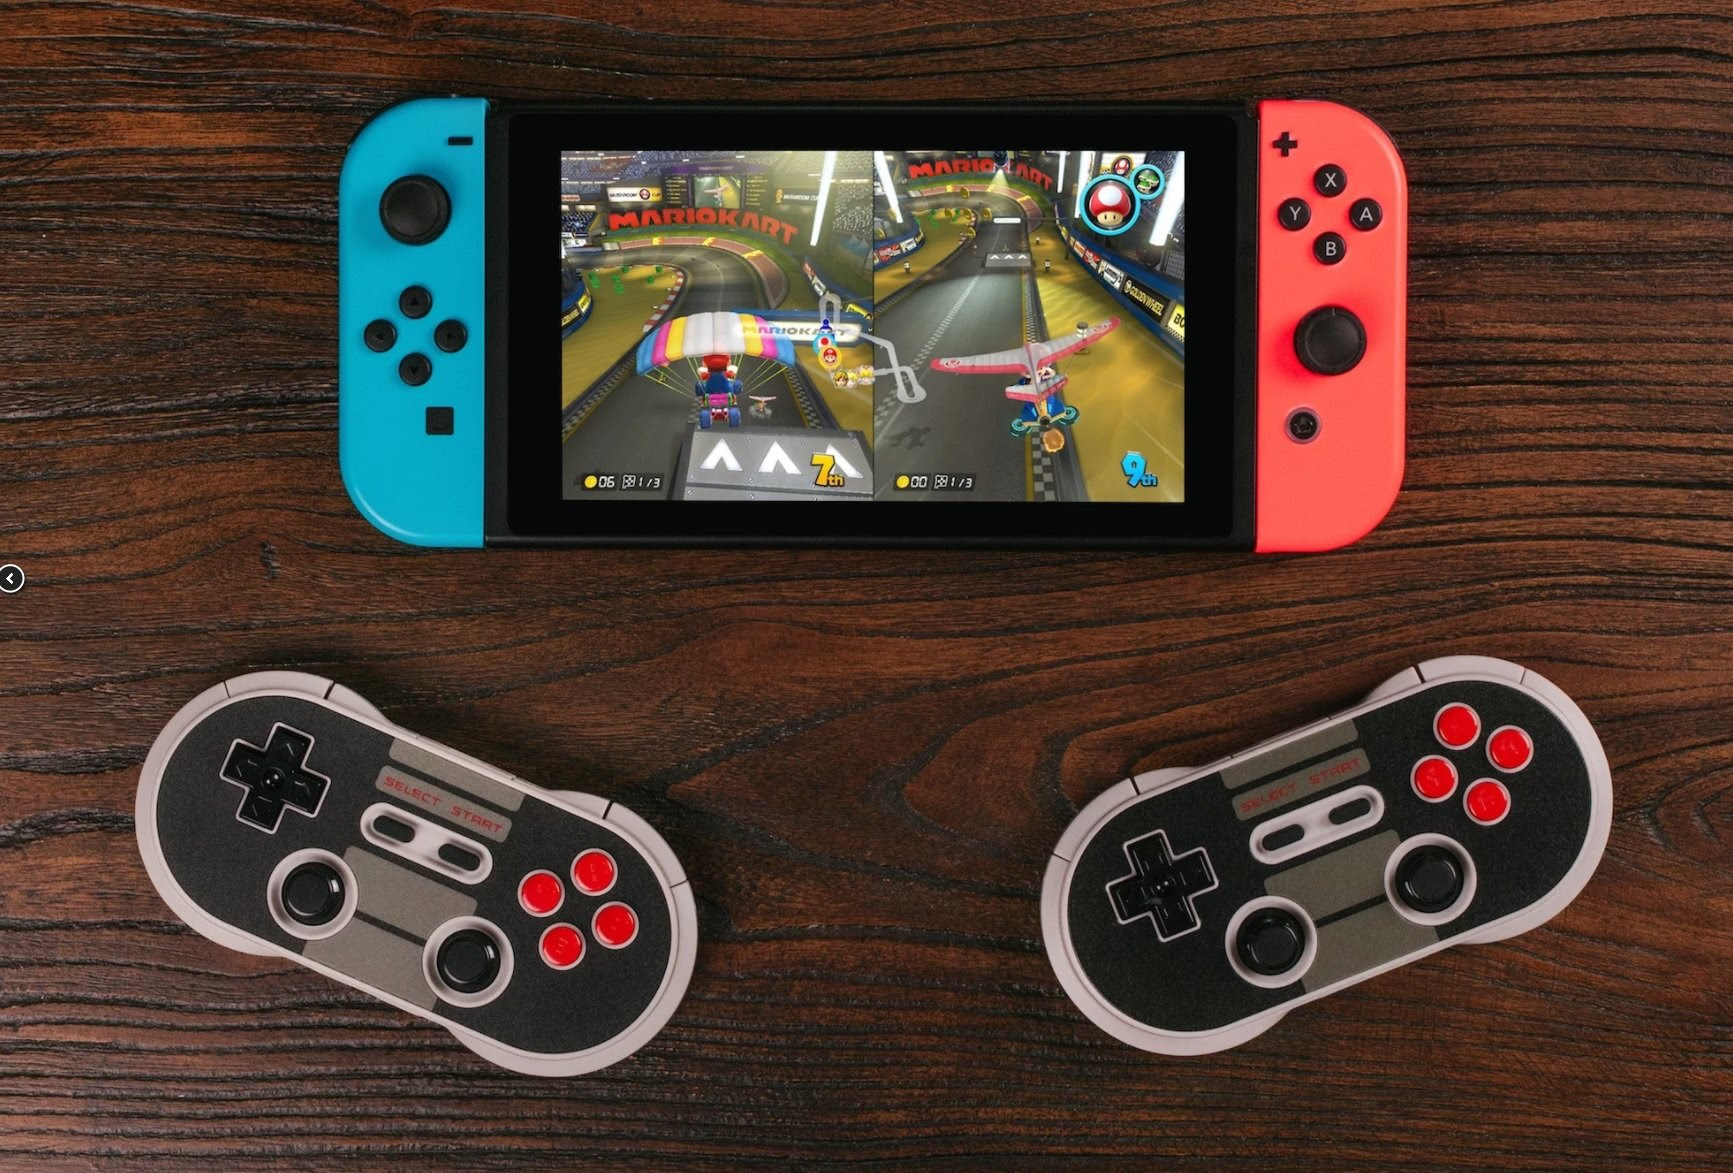 8Bitdo controllers can now be used on Switch, I'd recommend playing Ultra Street Fighter II with them screenshot